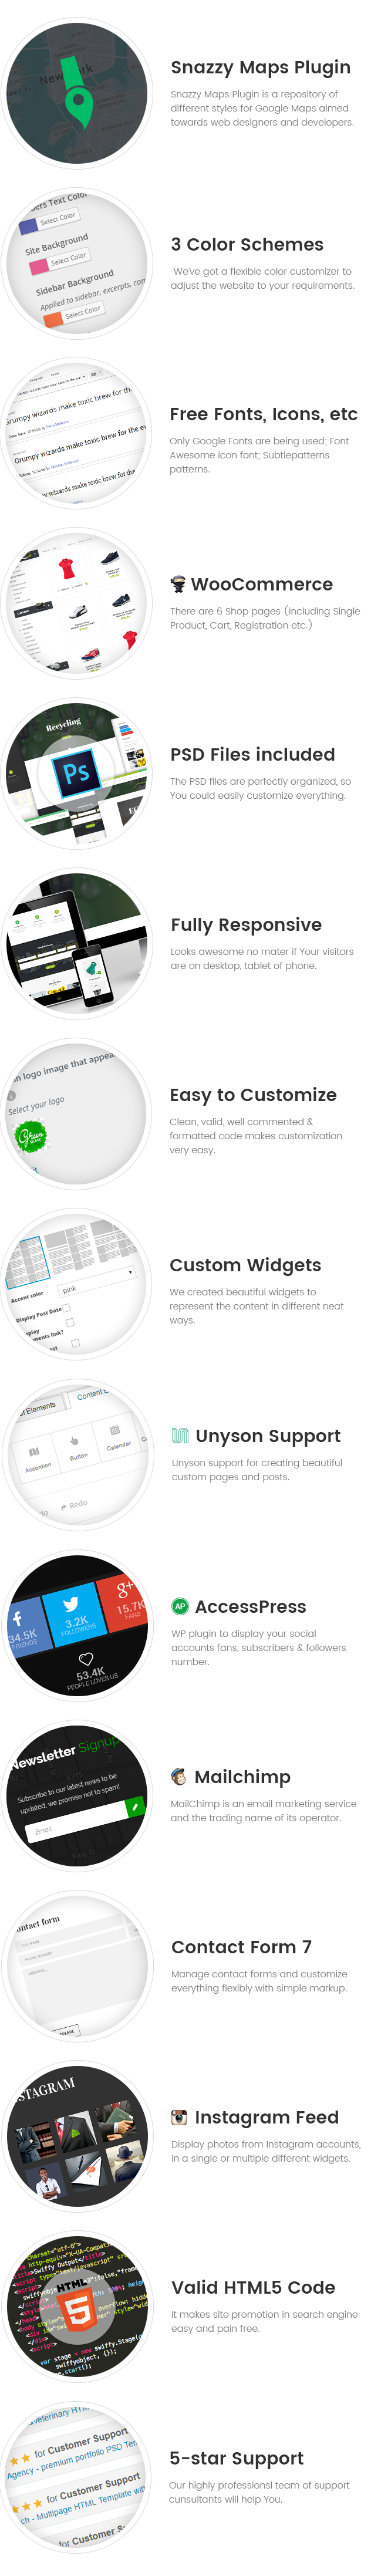 GoGreen - Waste Management and Recycling WordPress theme